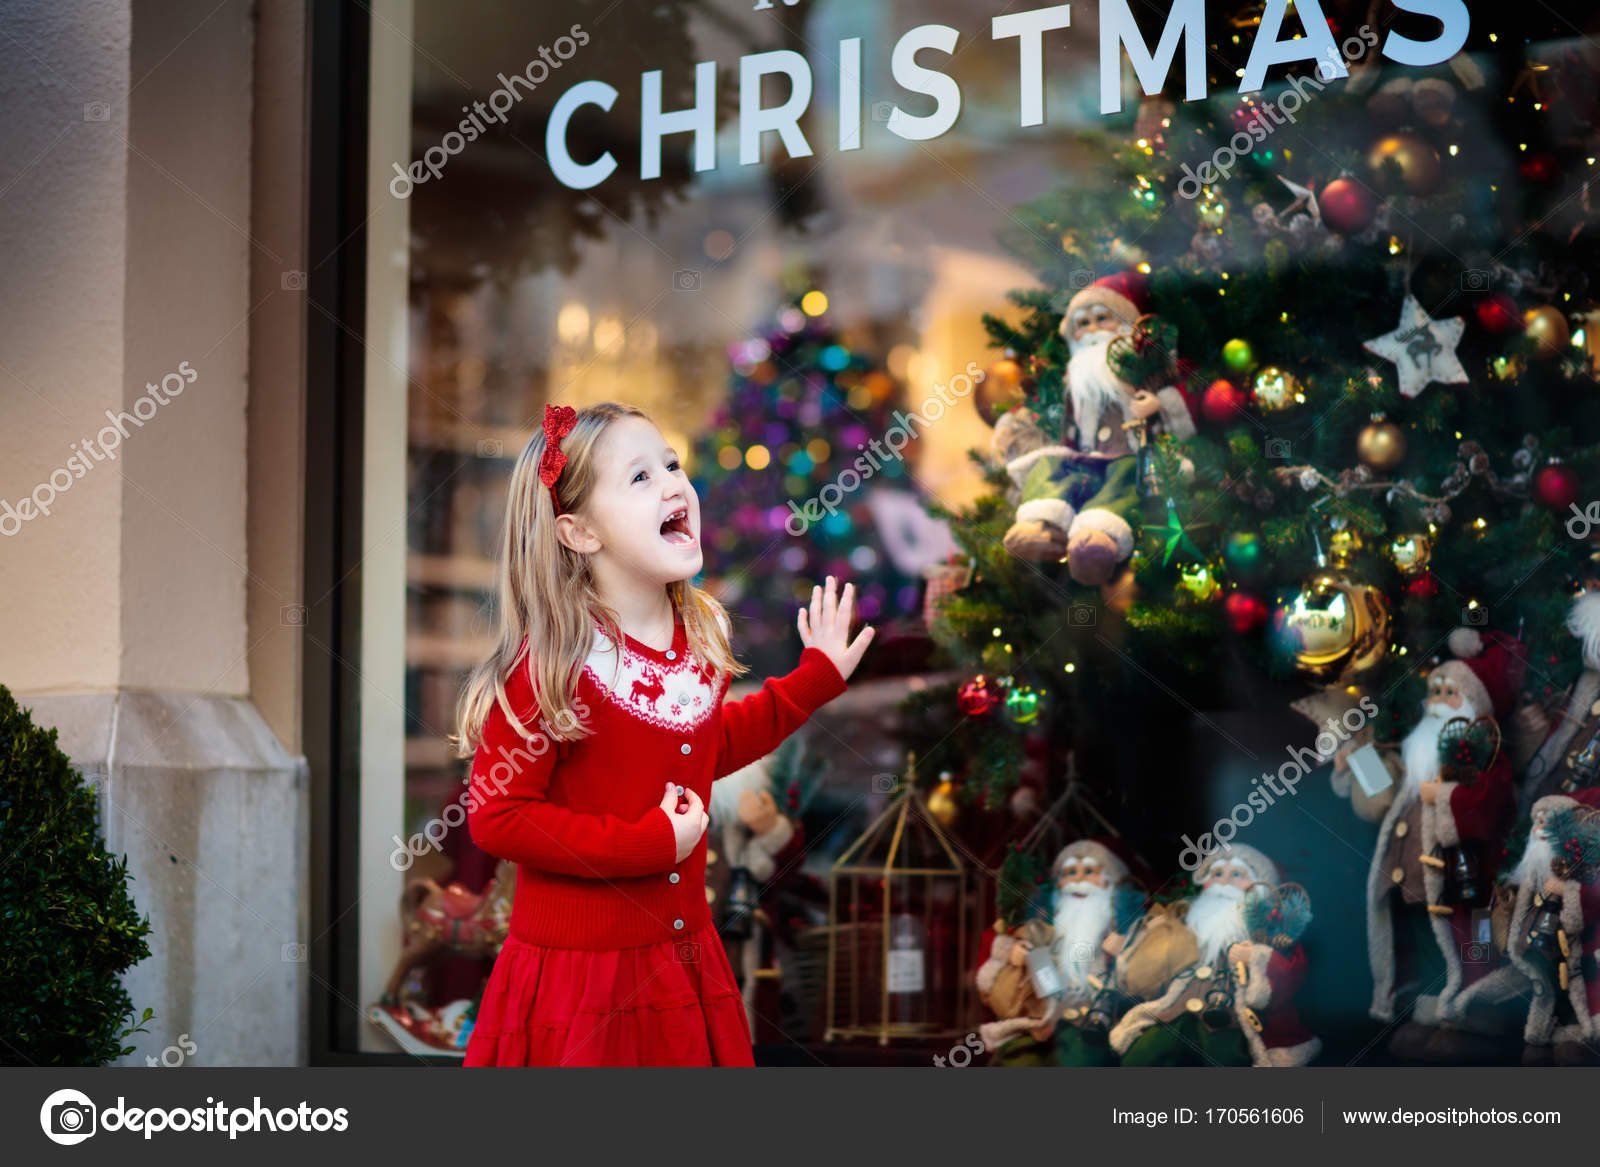 children buy xmas decoration and tree little girl at decorated shop window with lights and santa toys family buying christmas gifts winter holidays